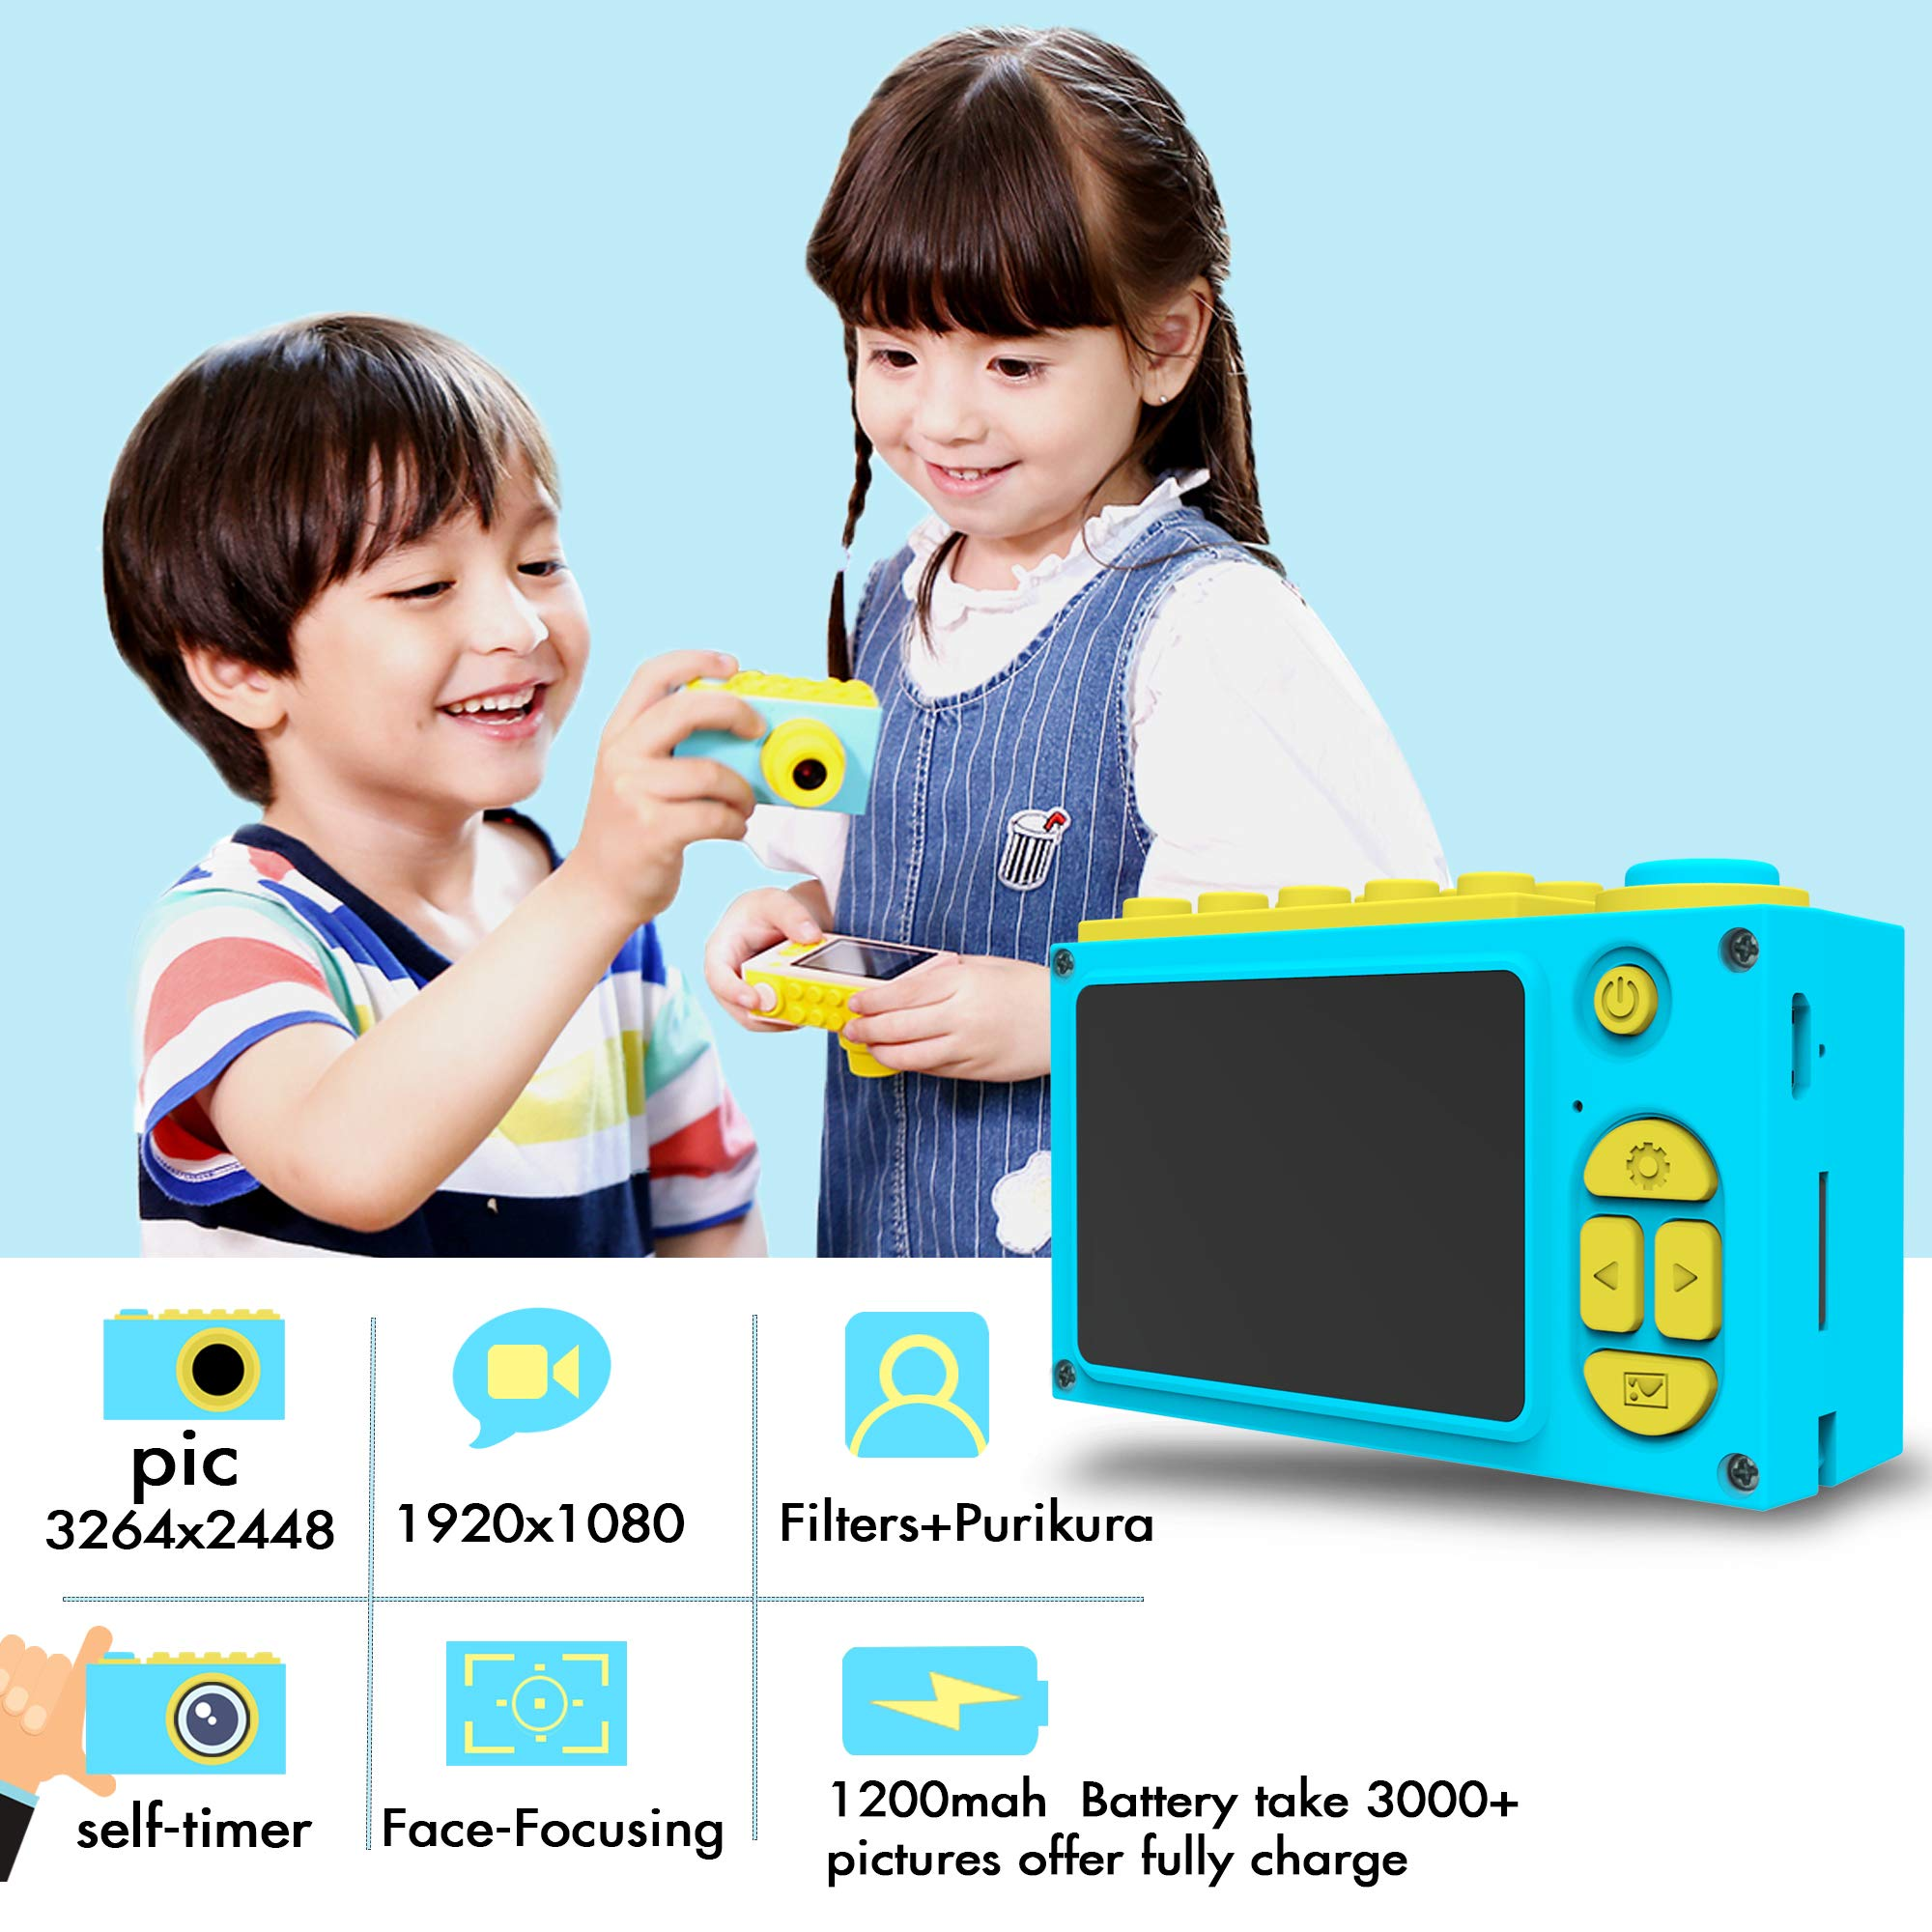 BlueFire Kids Digital Camera, Mini 2 Inch Screen Children's Camera, 8MP HD Child Camcorder, Best Digital Camera for Boys and Girls (Blue) by BlueFire (Image #2)